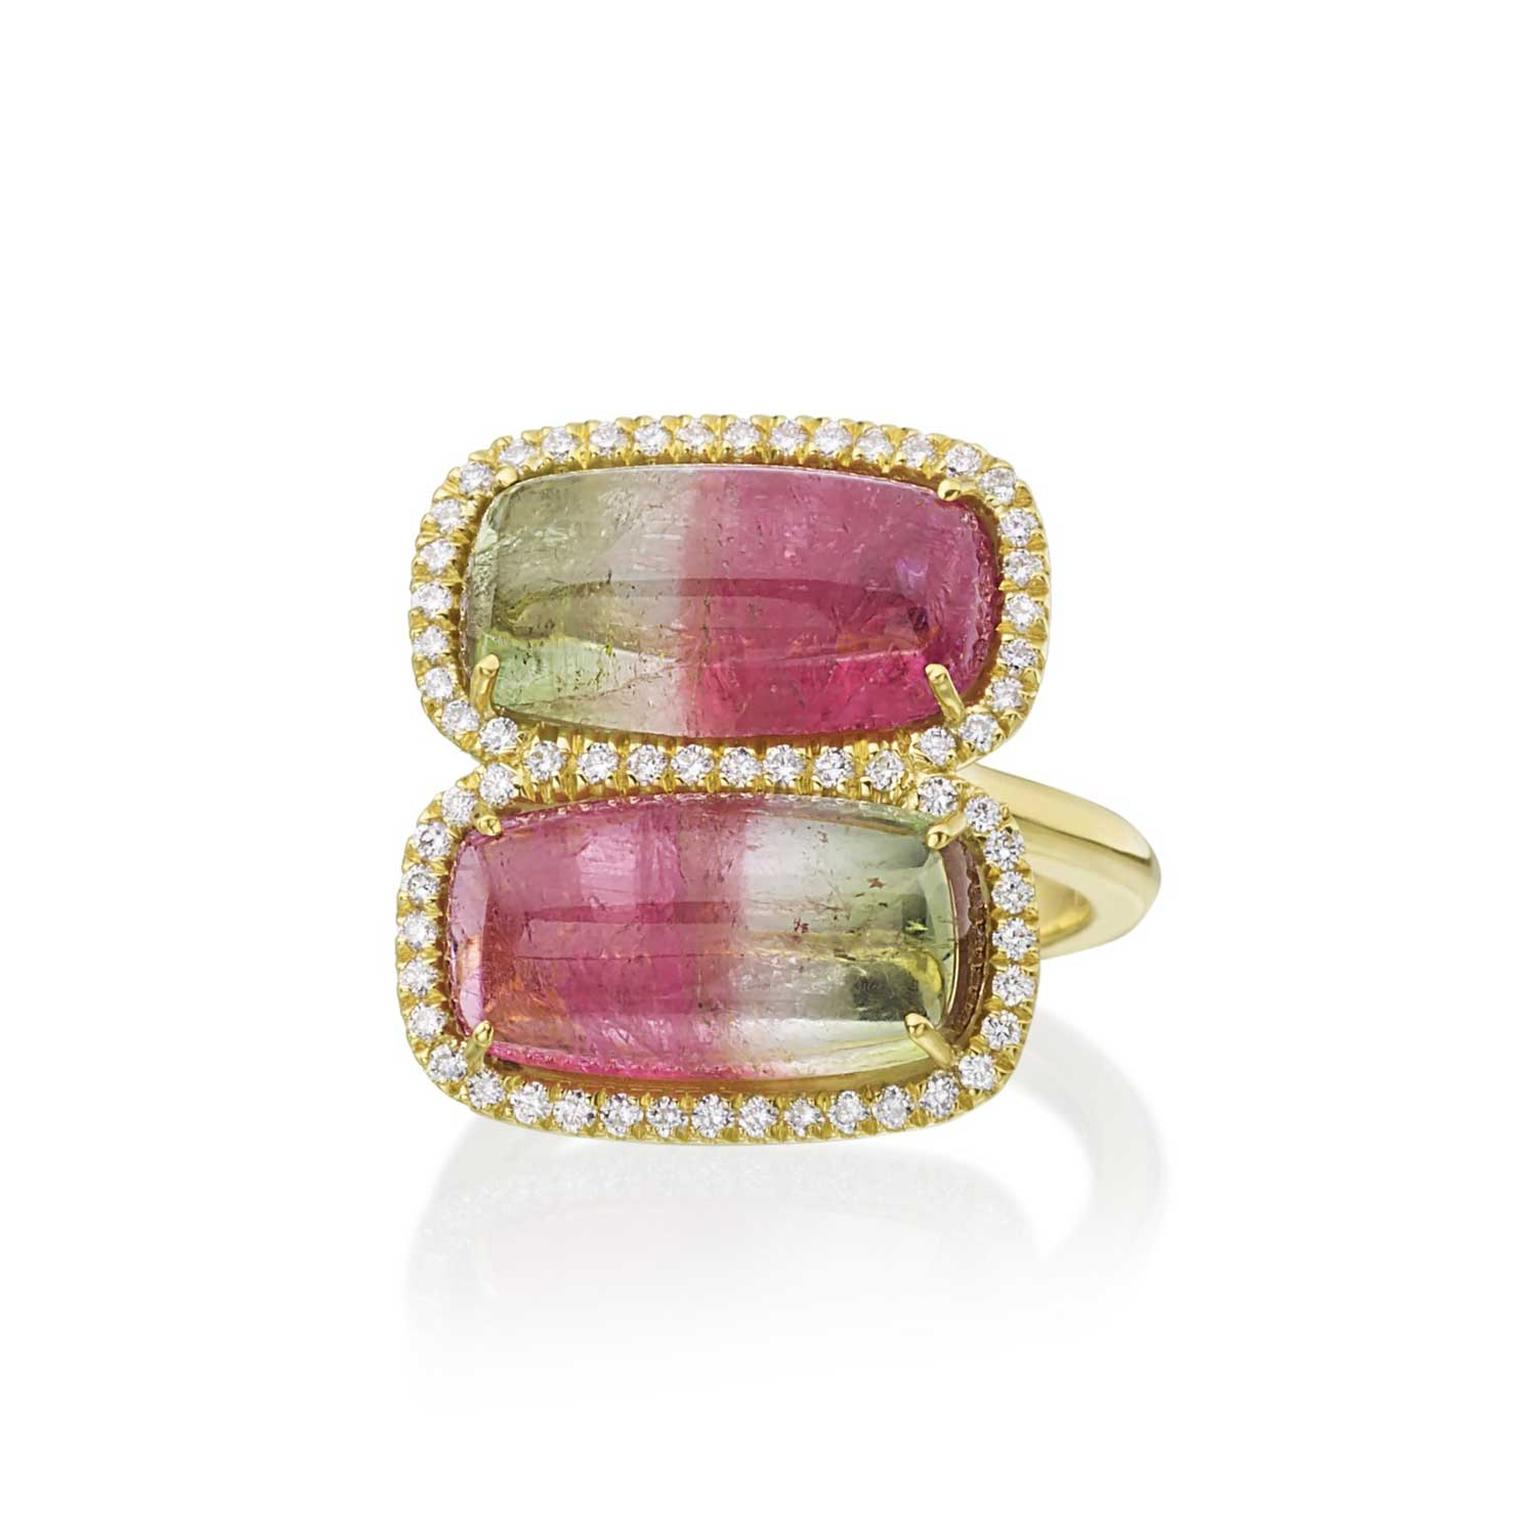 Lauren K watermelon tourmaline ring